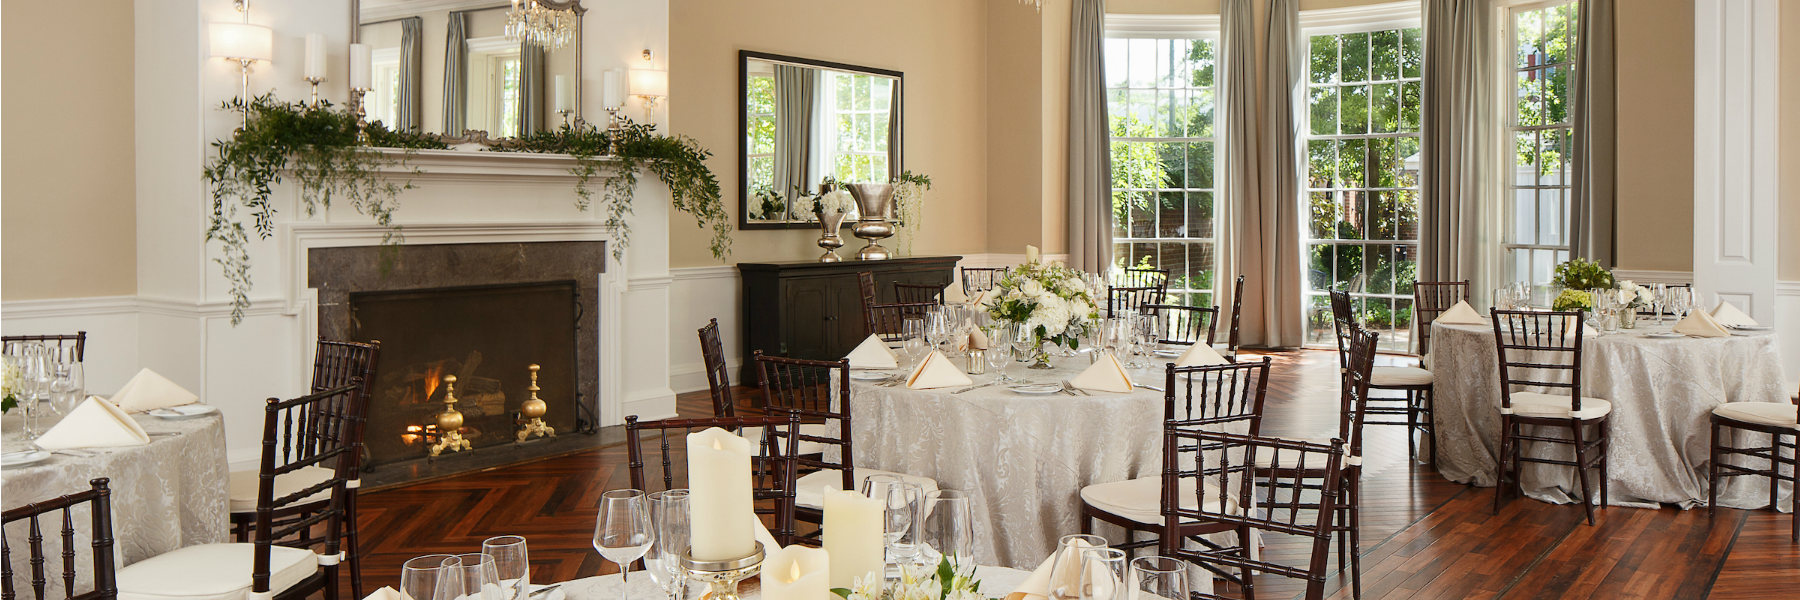 Rehearsal Dinners at the Tidewater Inn